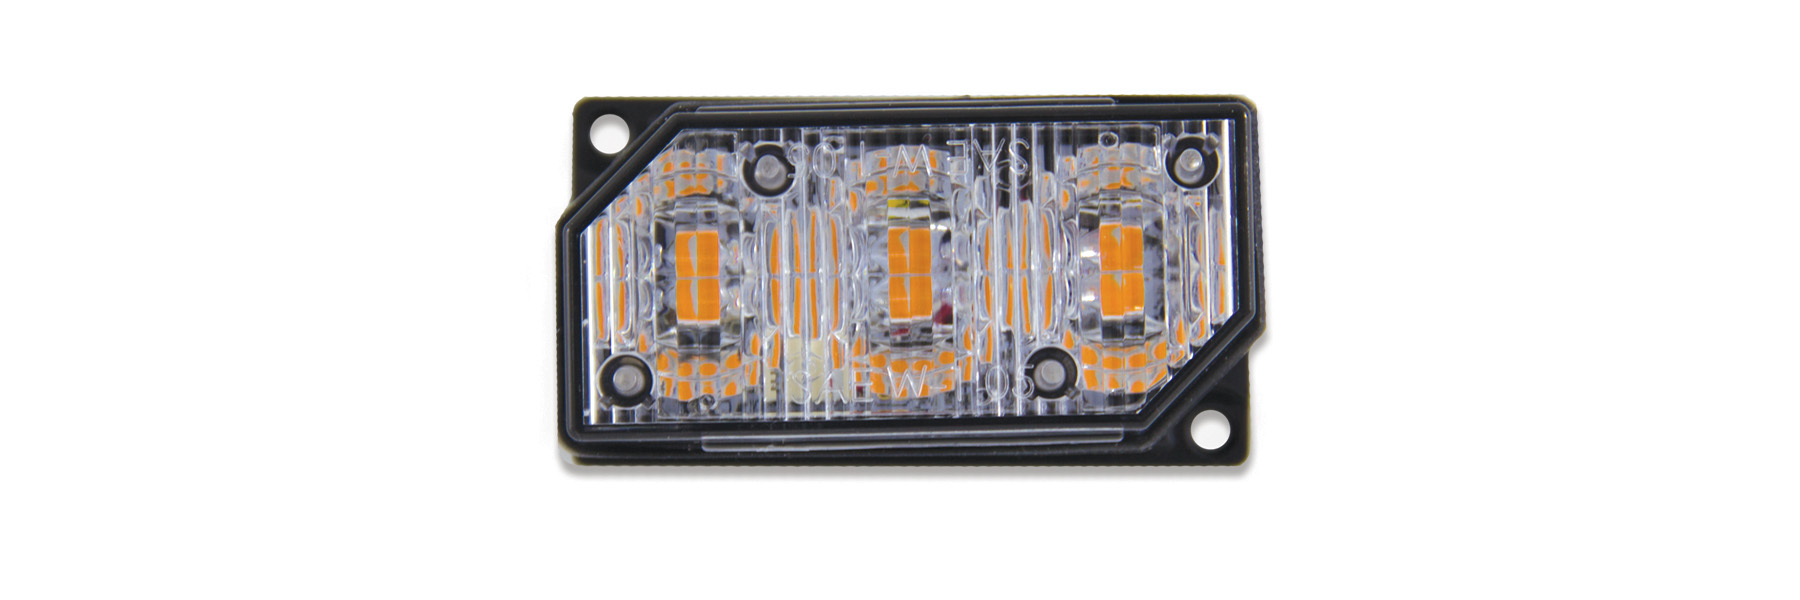 LED3 Plus Surface Mount Product Image